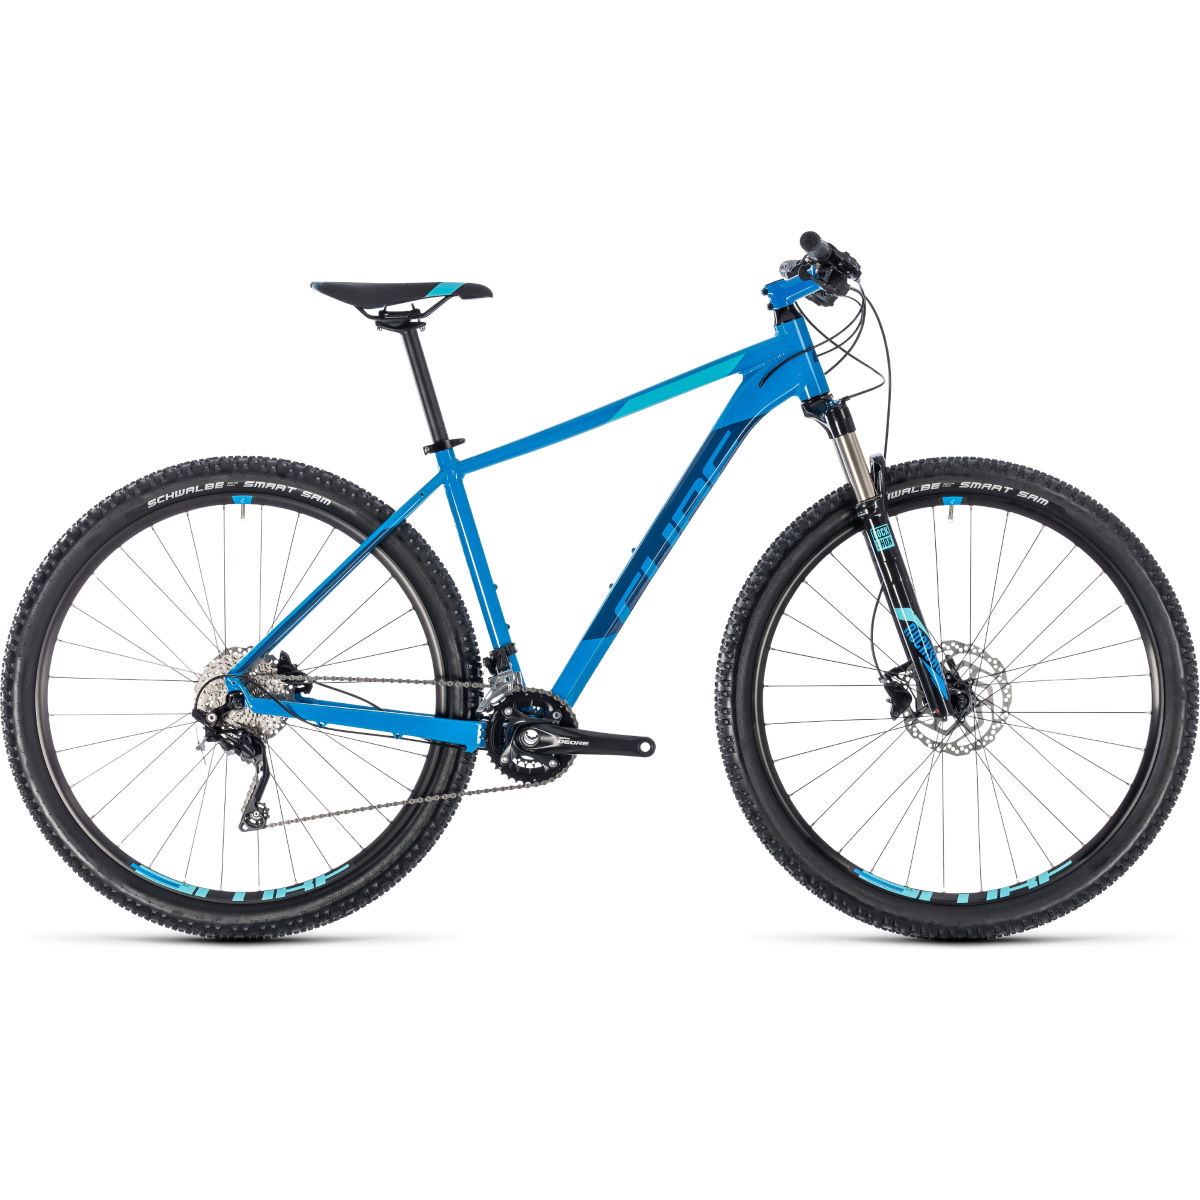 Cube Attention SL 29 Hardtail Mountain Bike (2018) - Bicicletas de MTB rígidas